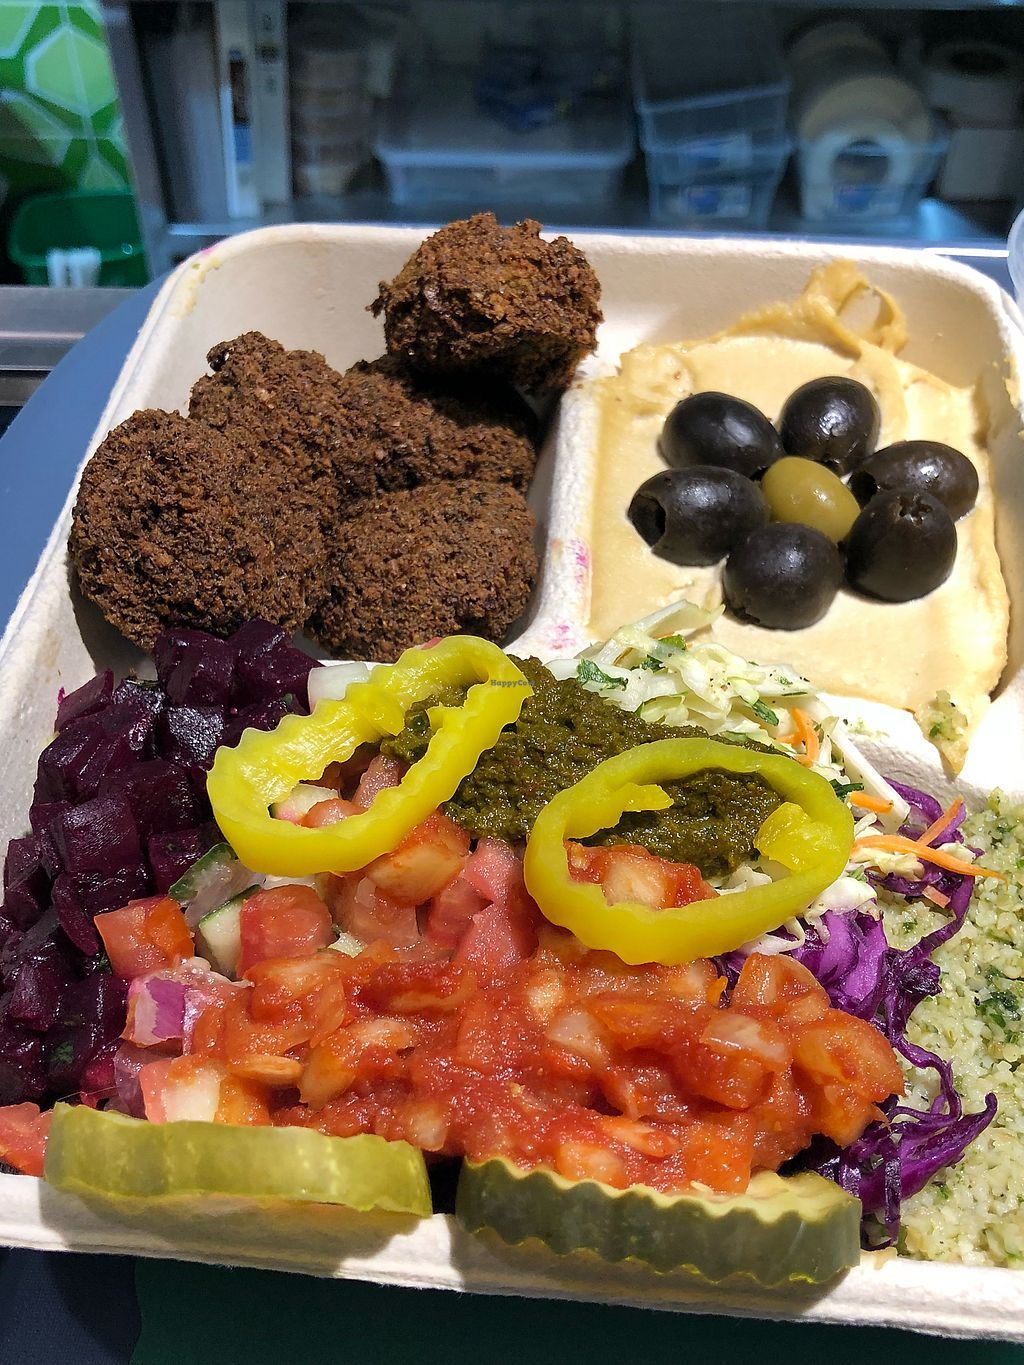 """Photo of Maoz Vegetarian  by <a href=""""/members/profile/daroff"""">daroff</a> <br/>Falafel platter!  <br/> May 18, 2018  - <a href='/contact/abuse/image/107927/401564'>Report</a>"""